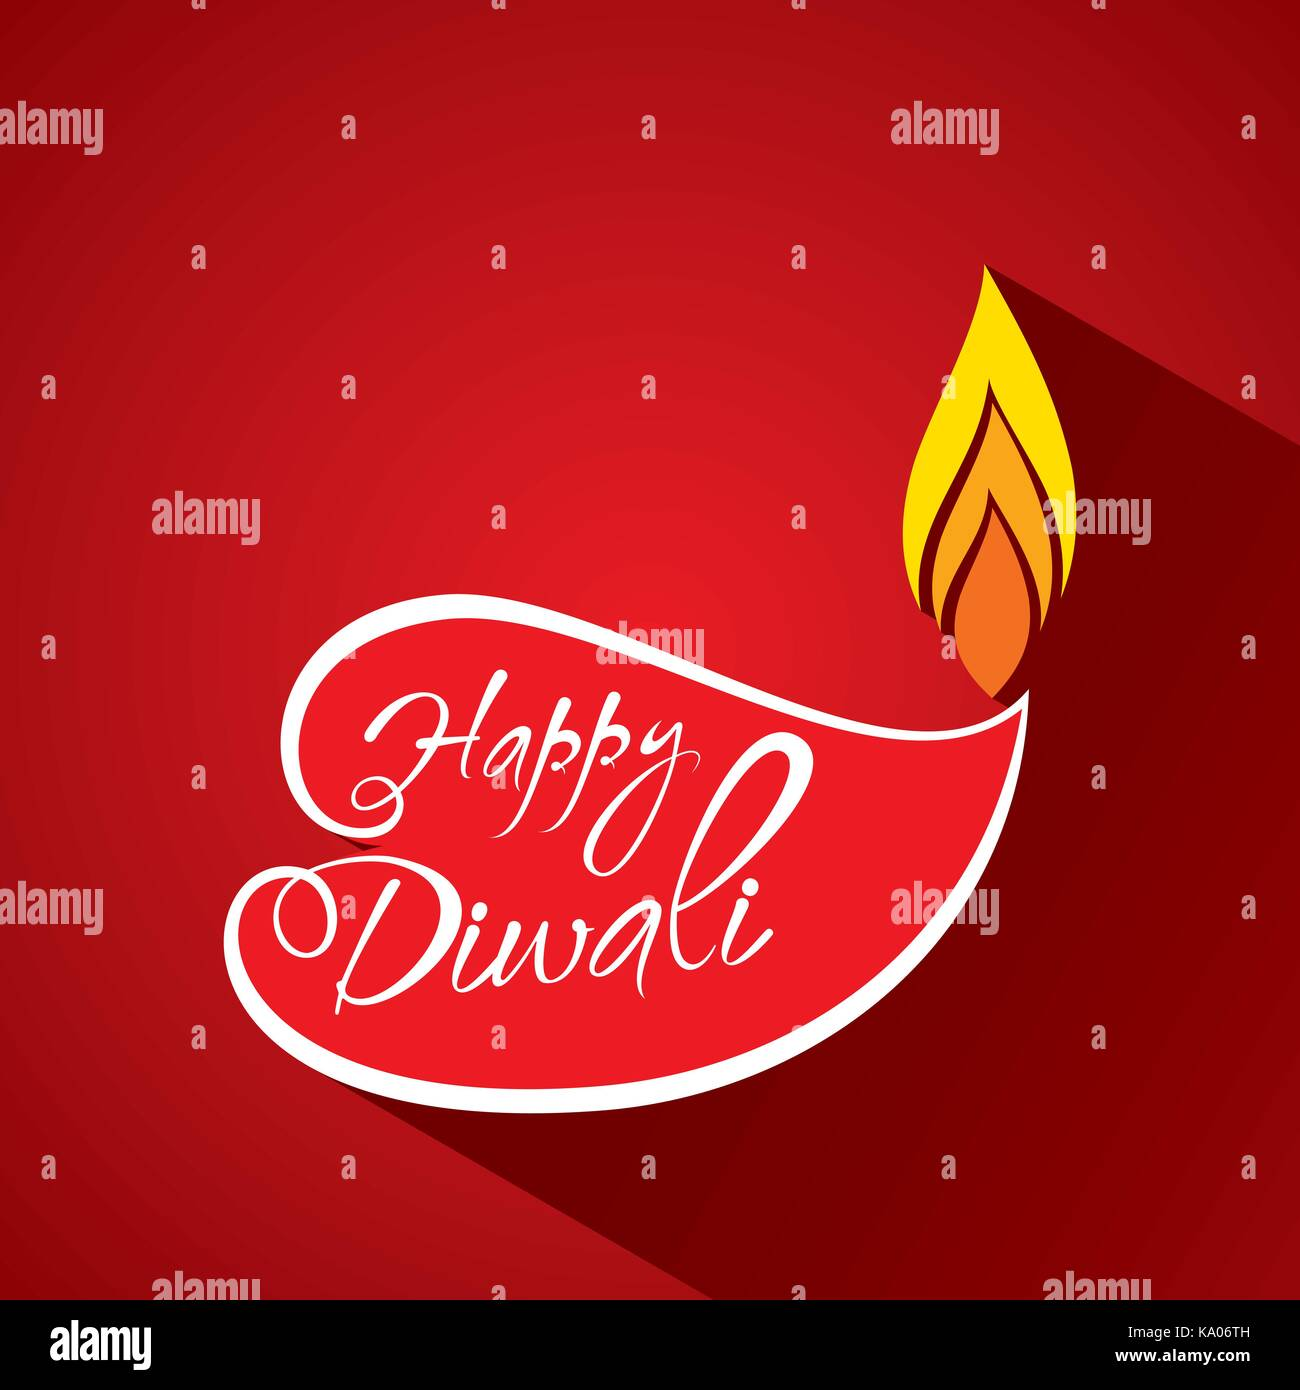 Creative Happy Diwali Festival Greeting Design With Abstract